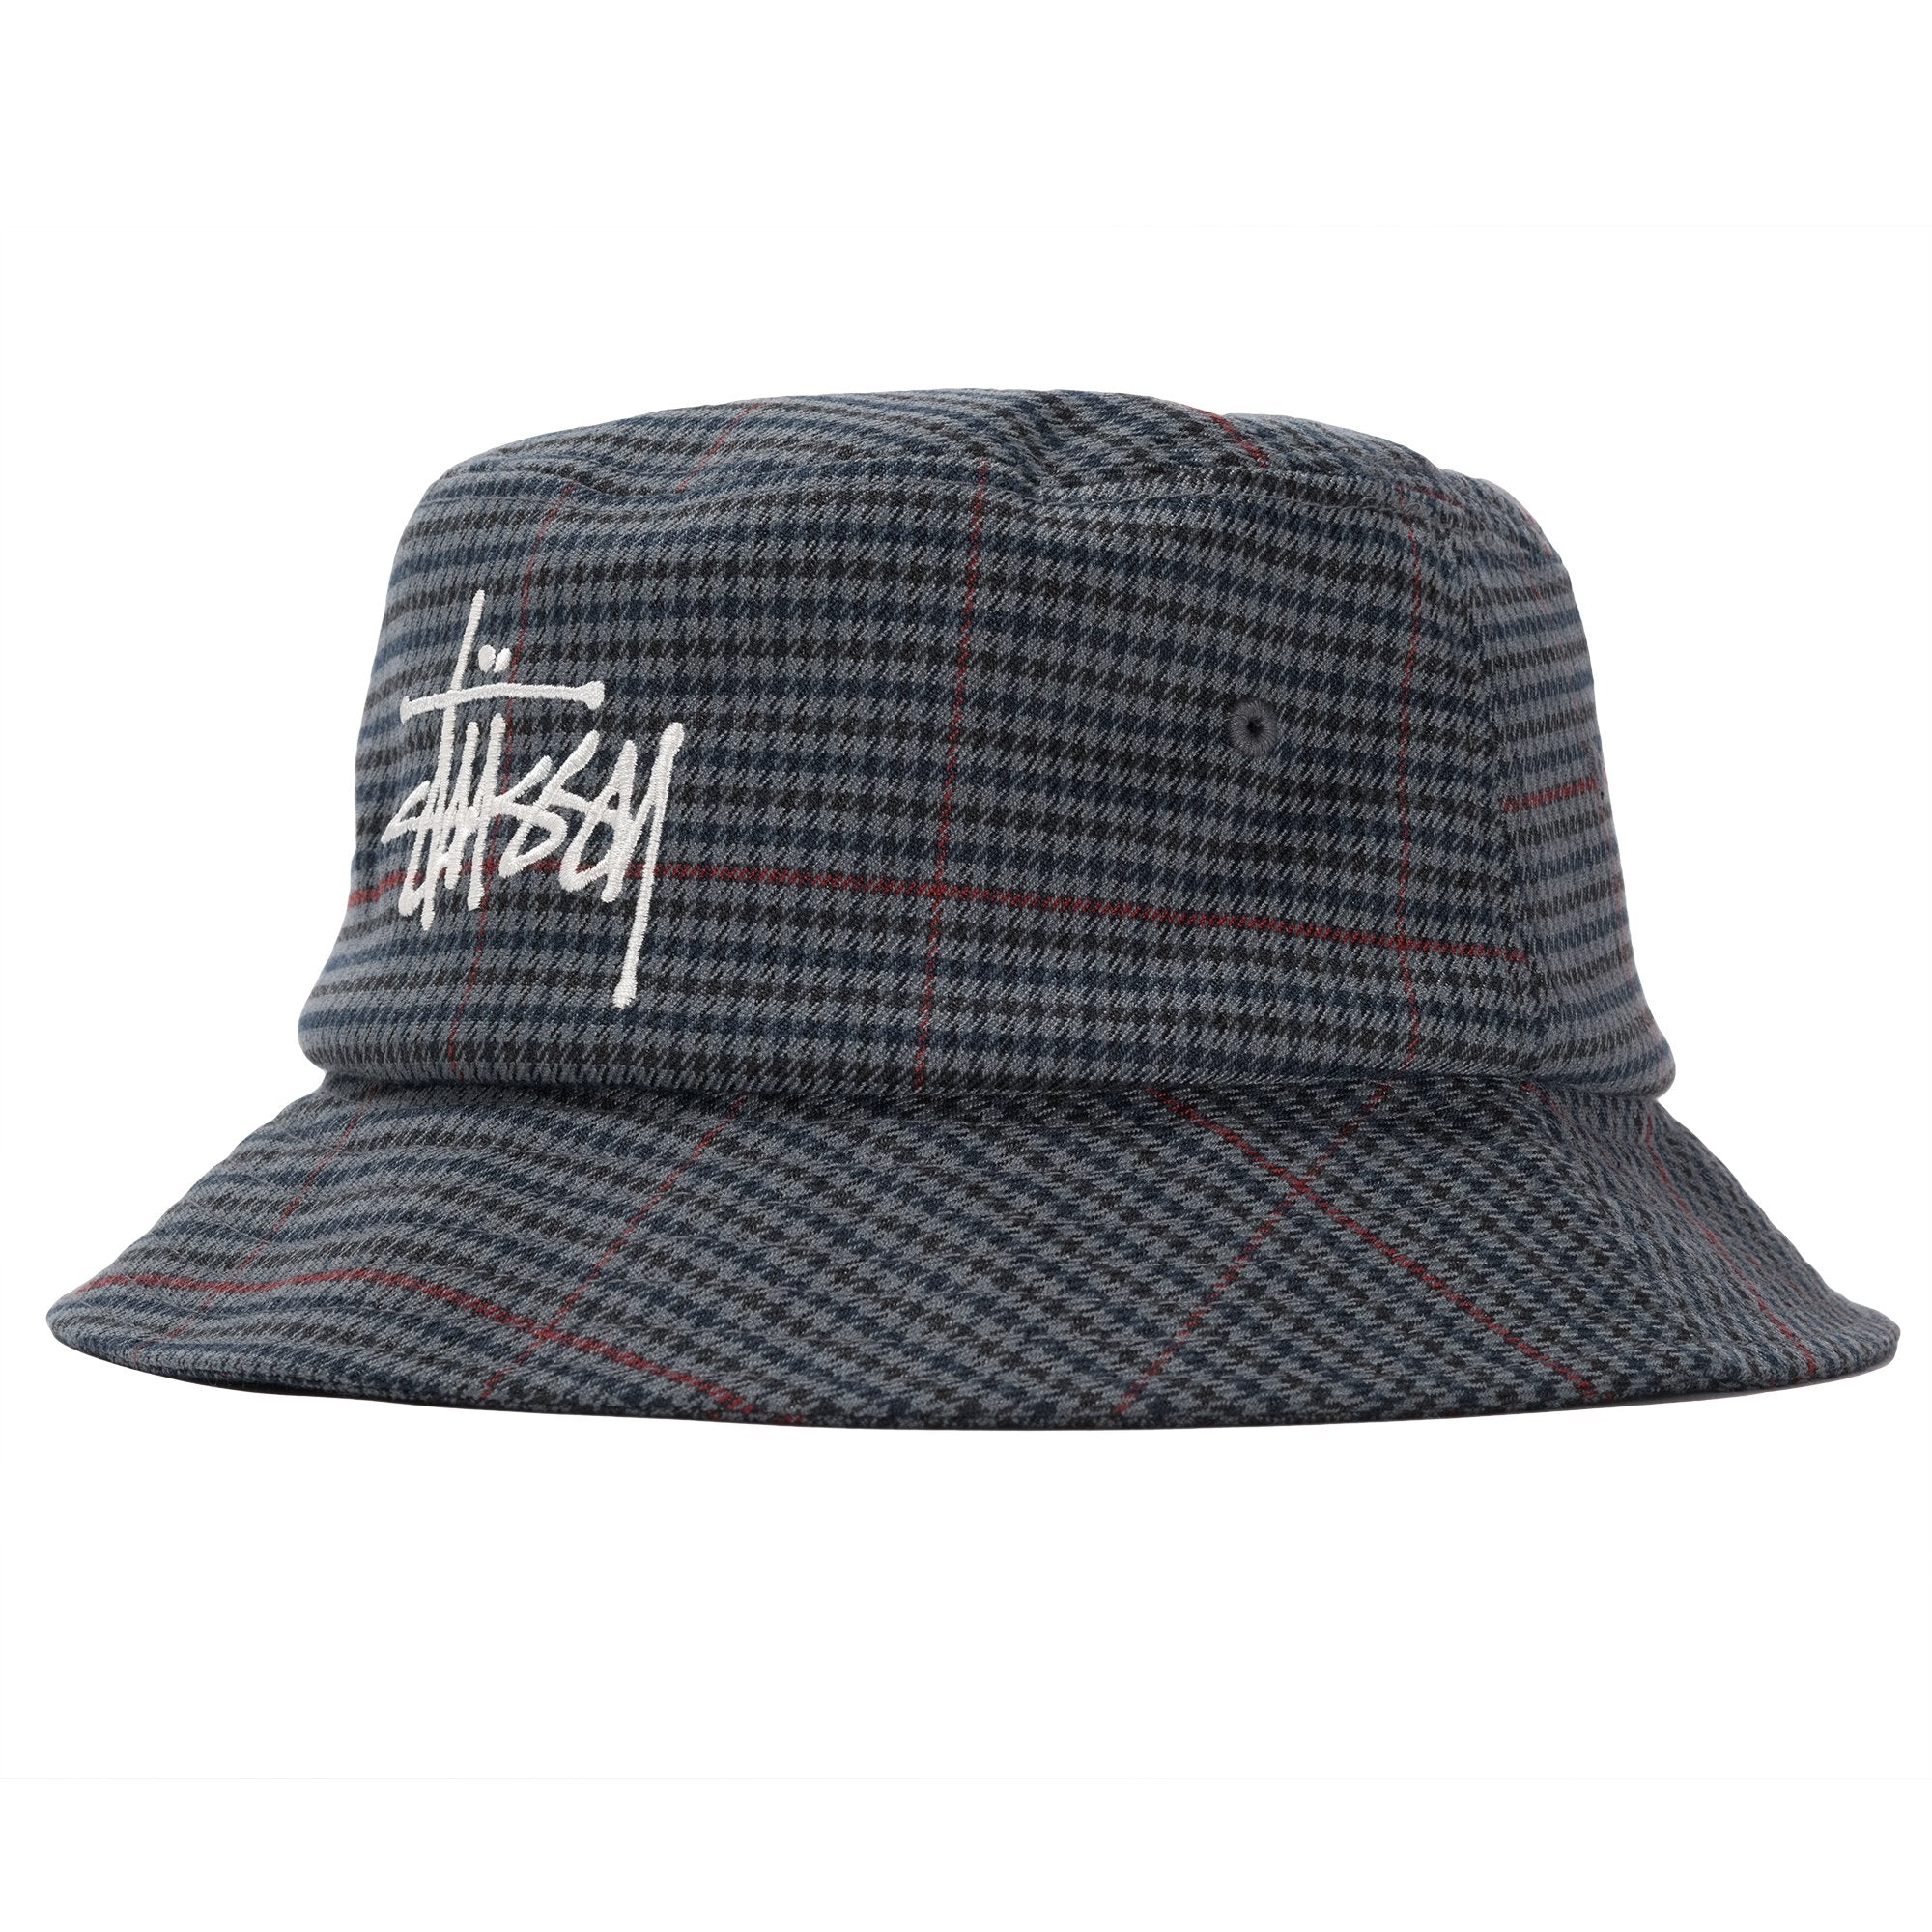 a733b10c0 Stussy Hats, Bucket Hats, Caps and Beanies for Men and Women ...